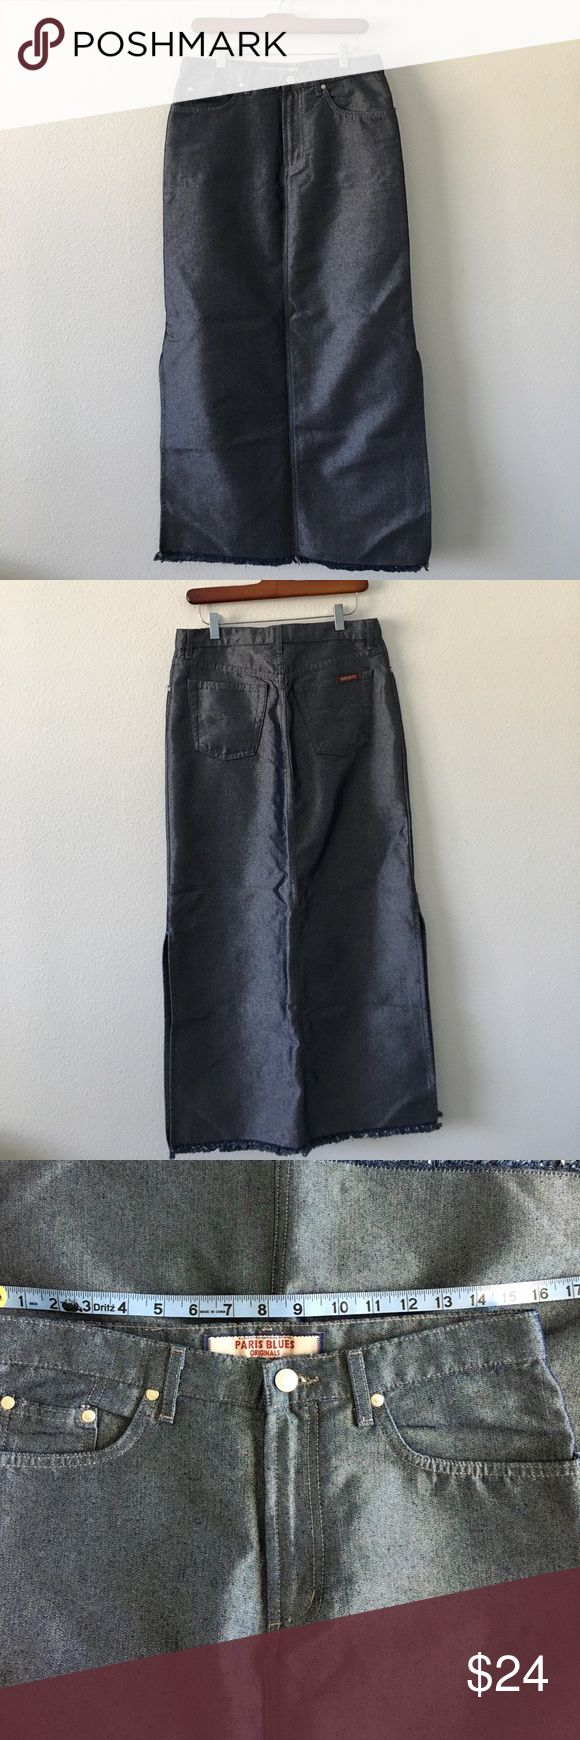 Paris Blues Maxi Skirt NWOT Denim maxiskirt with side slits and unfinished hem. The fabric has an amazing Sheen and I feel that you could address this skirt up and wear to a formal event. Never worn. Five pocket style with zipper and button closure. This skirt would look great with summer tops and sneakers. In the fall you can add sweaters and wear with Leggings and boots. Paris Blues Skirts Maxi